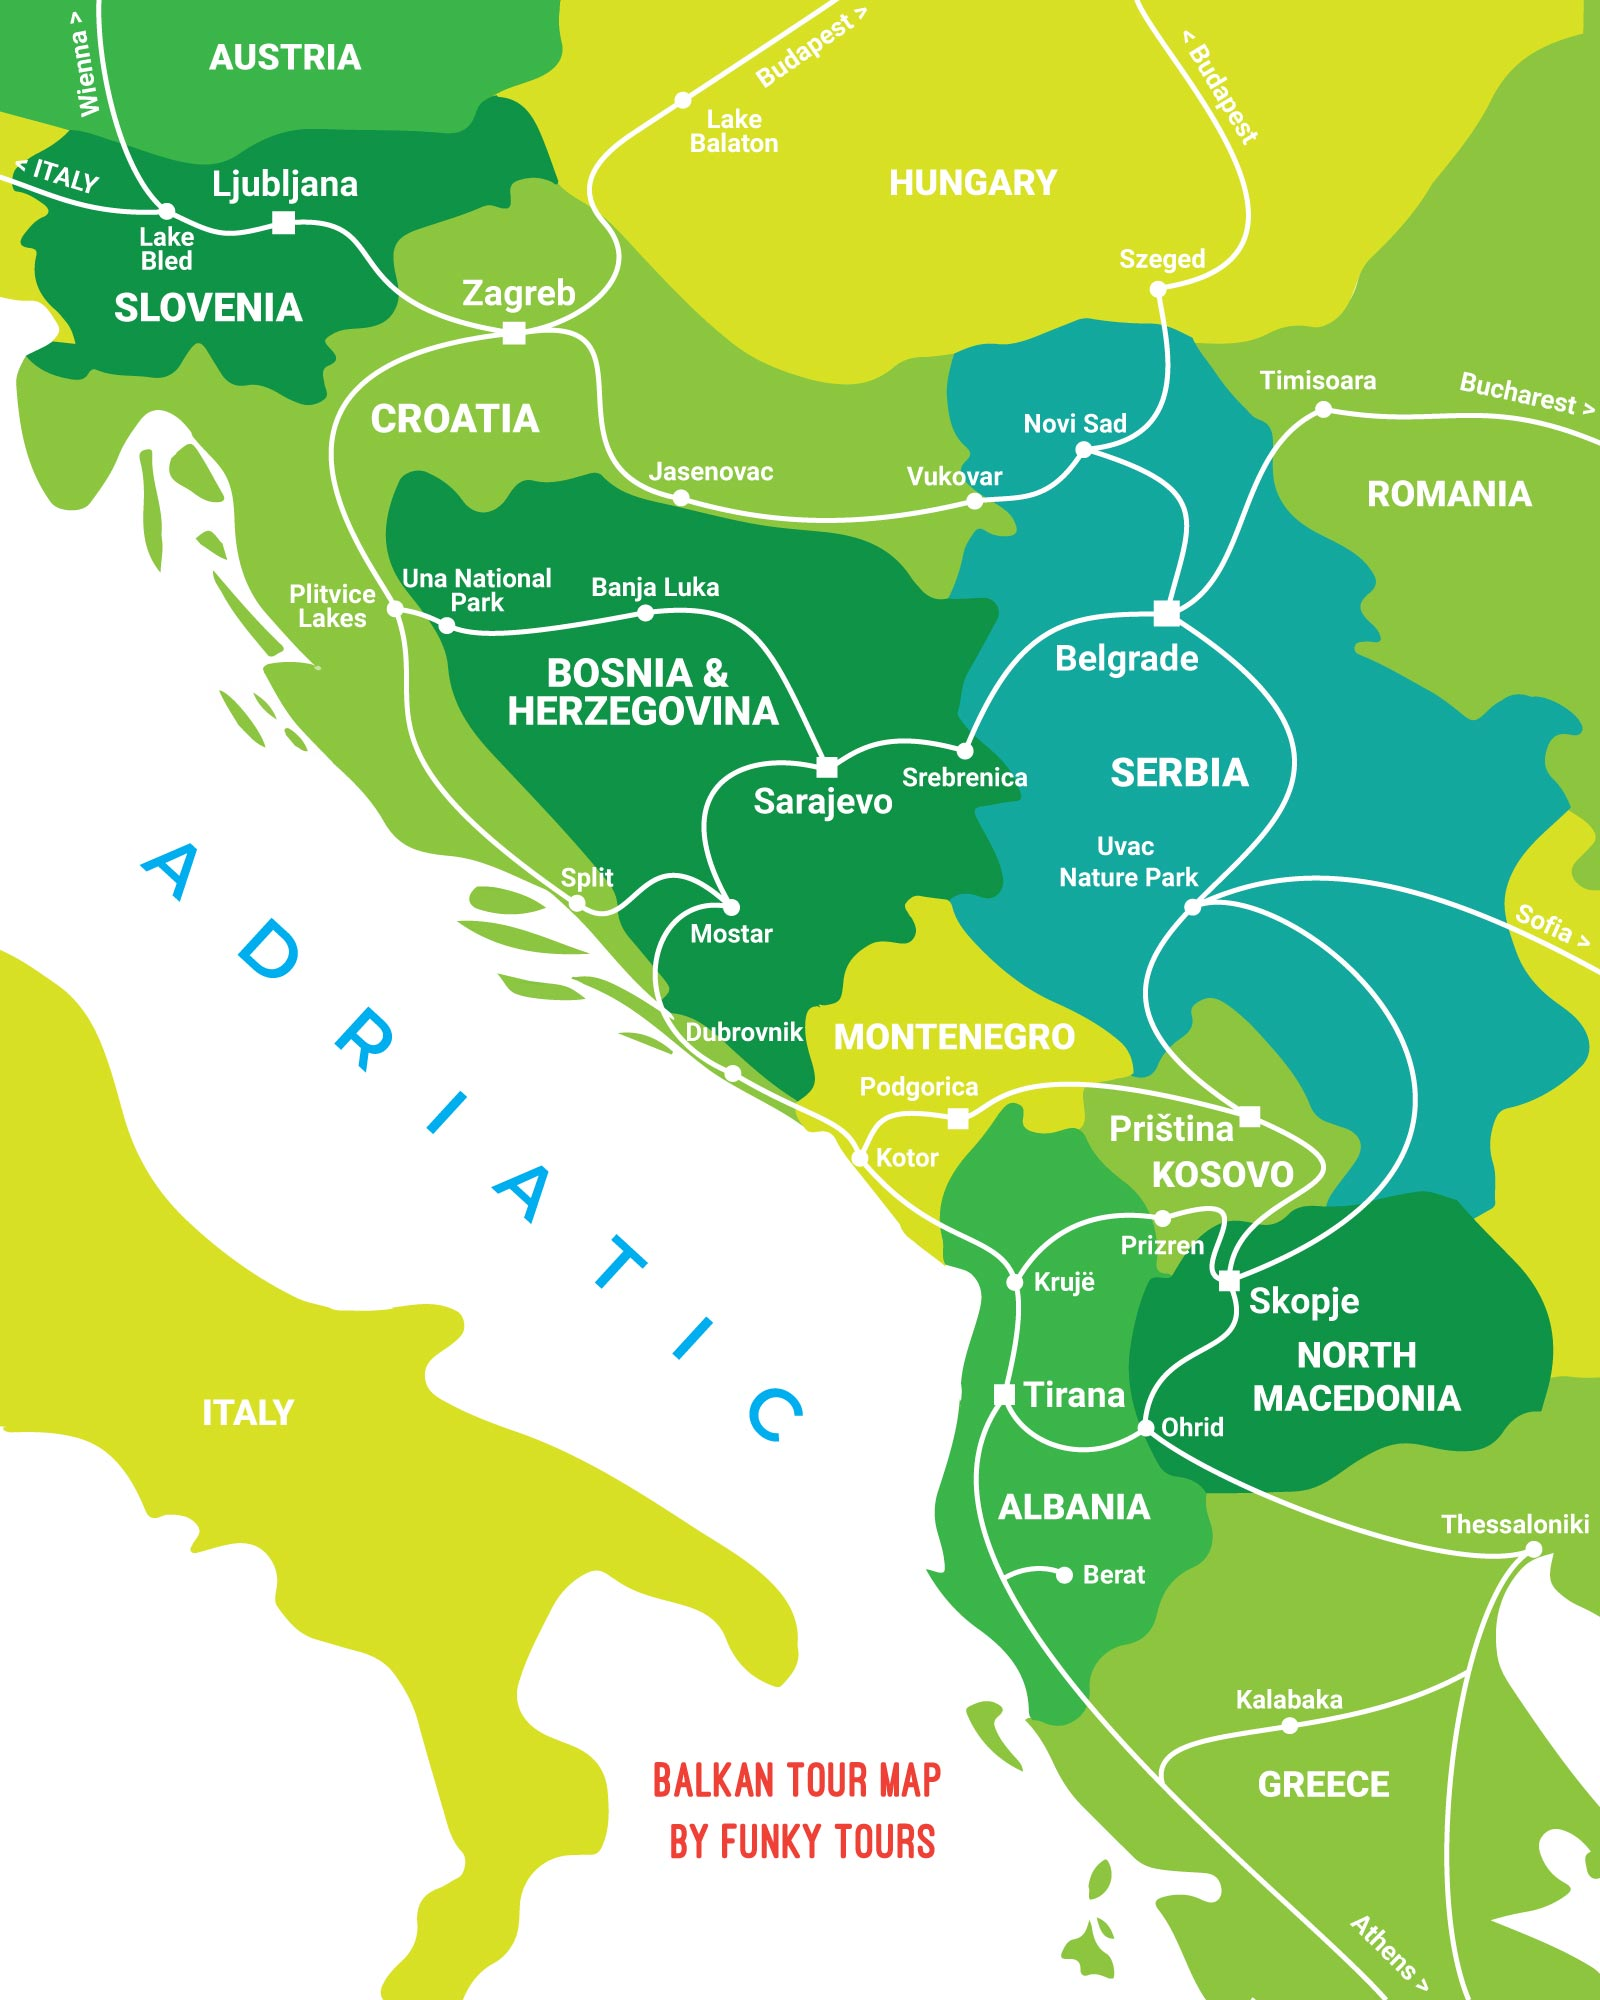 Balkan Tour Map By Funky Tours covering Albania, Bosnia and Herzegovina, Croatia, Serbia, Slovenia, Montenegro, North Macedonia and Kosovo.